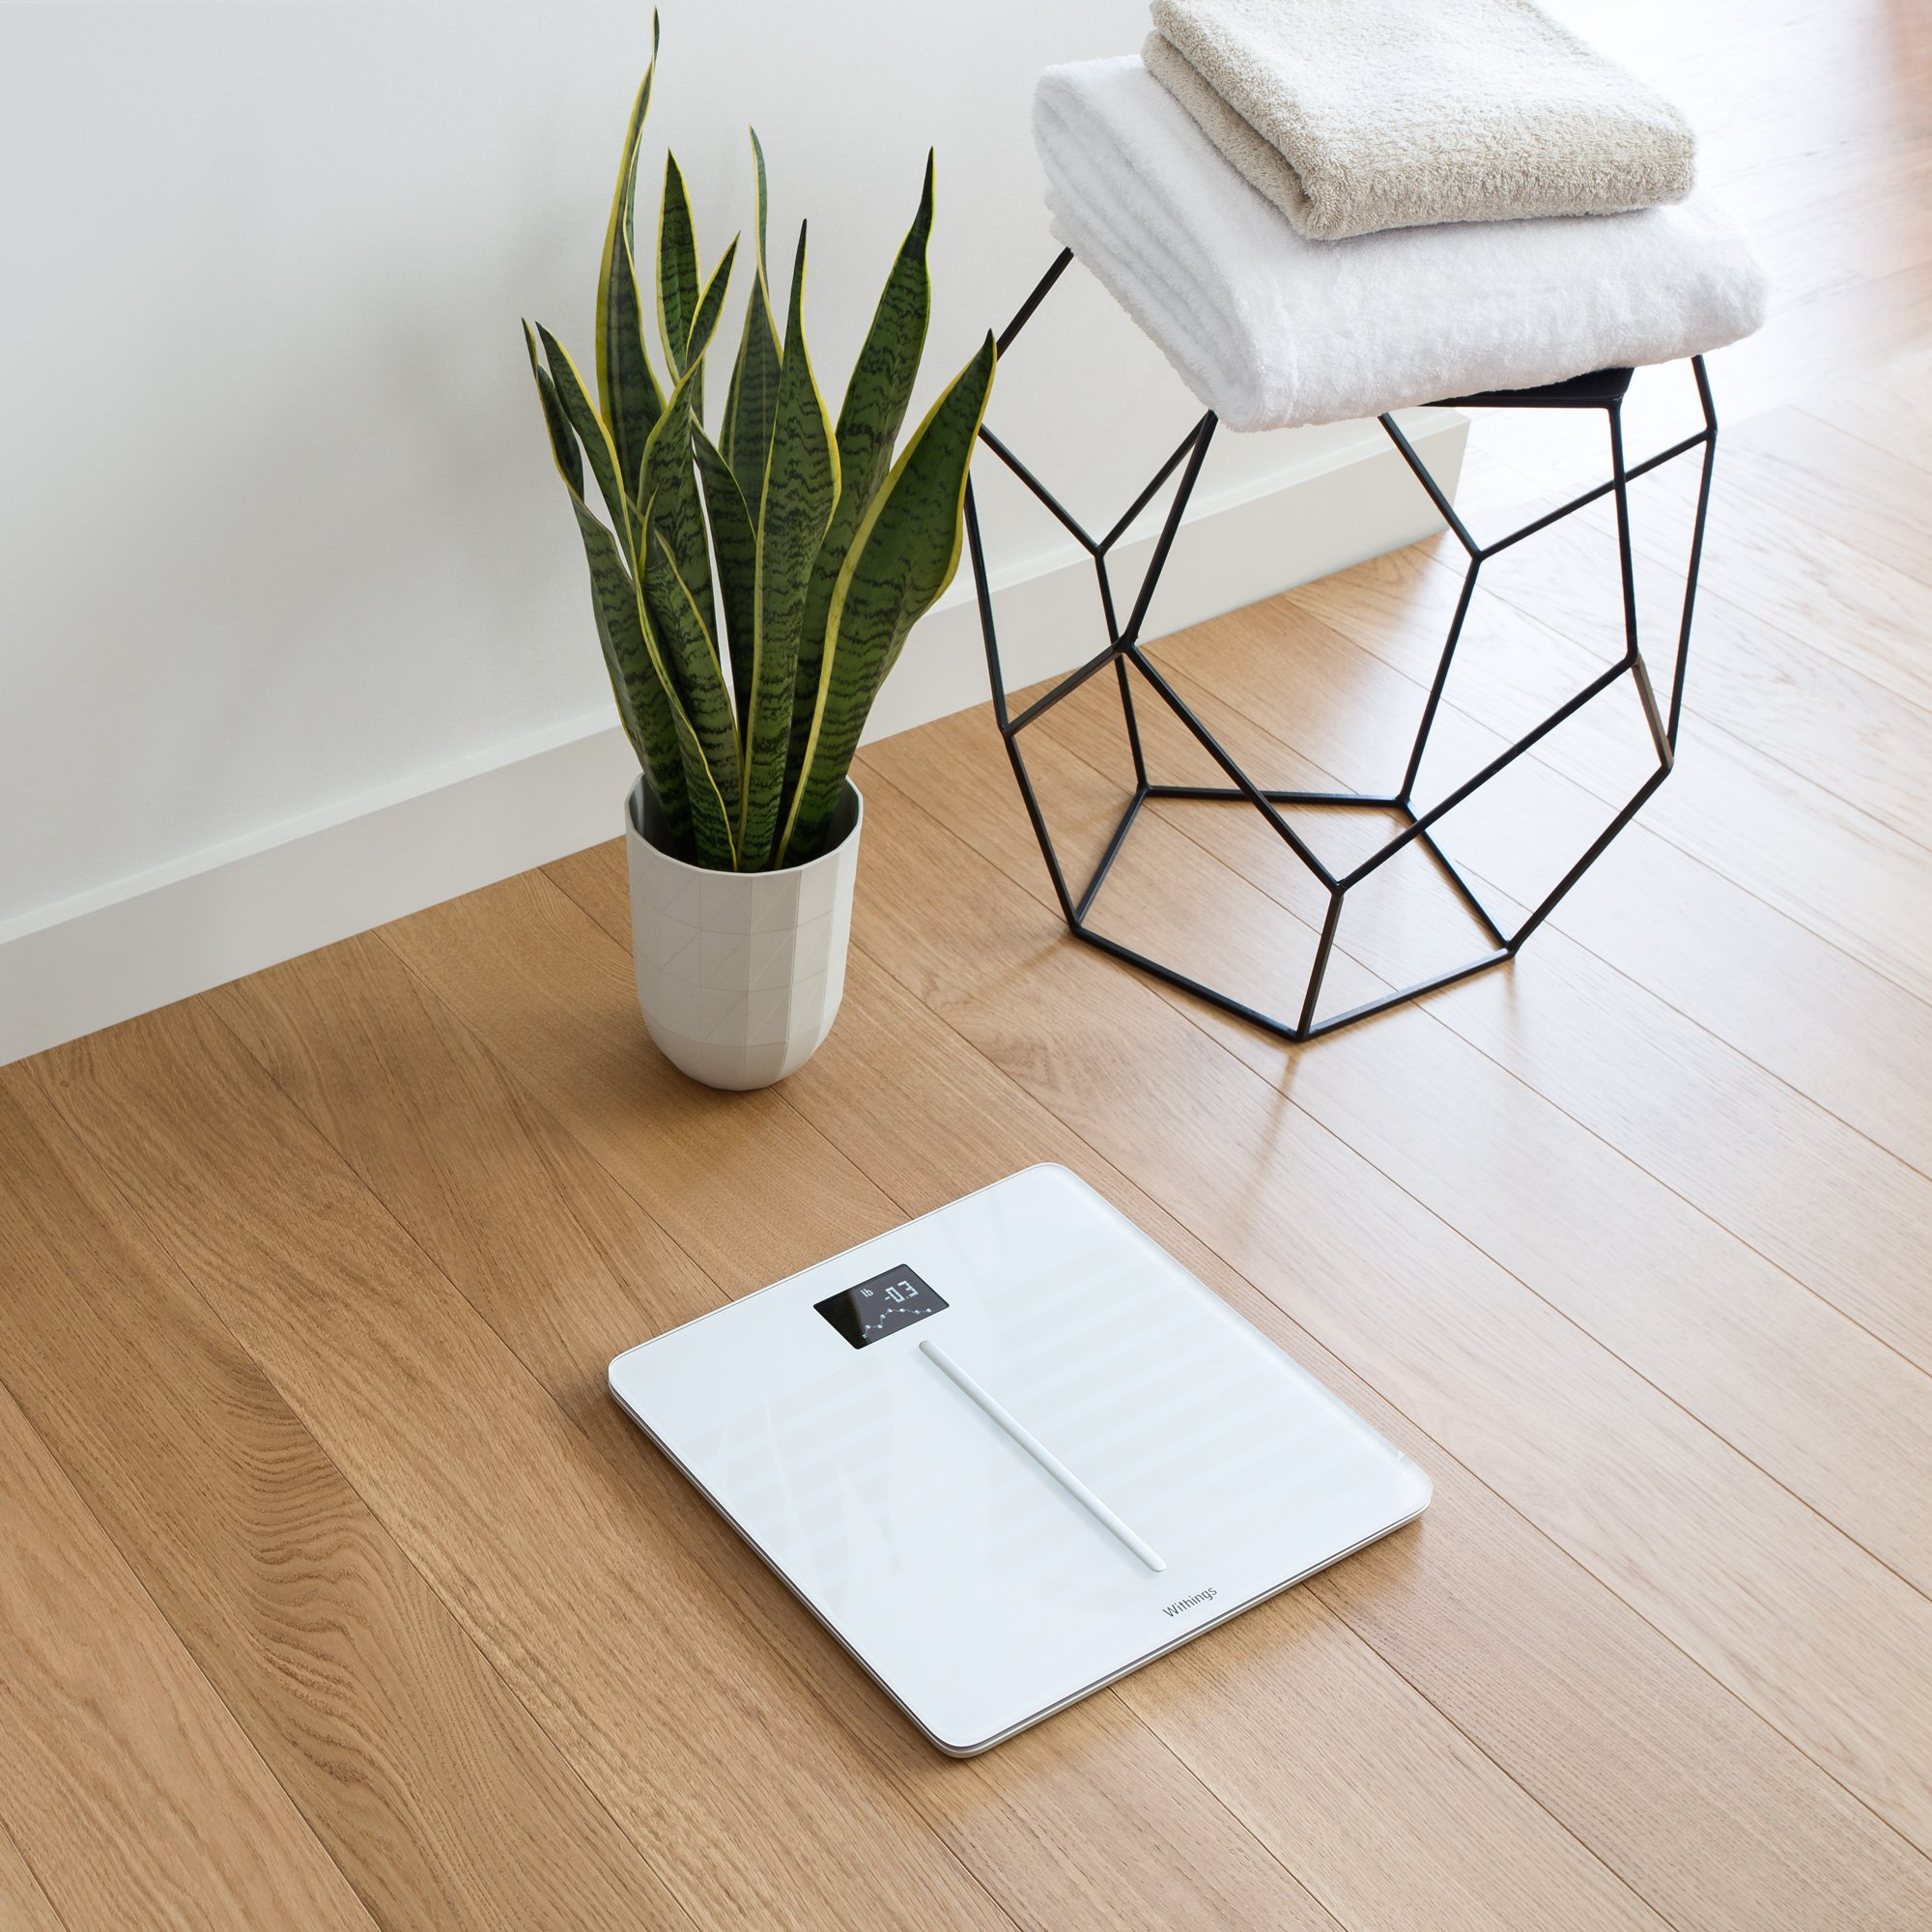 Withings Body Cardio - Heart Health and Body Composition Wi-Fi Scale, White by Withings (Image #6)